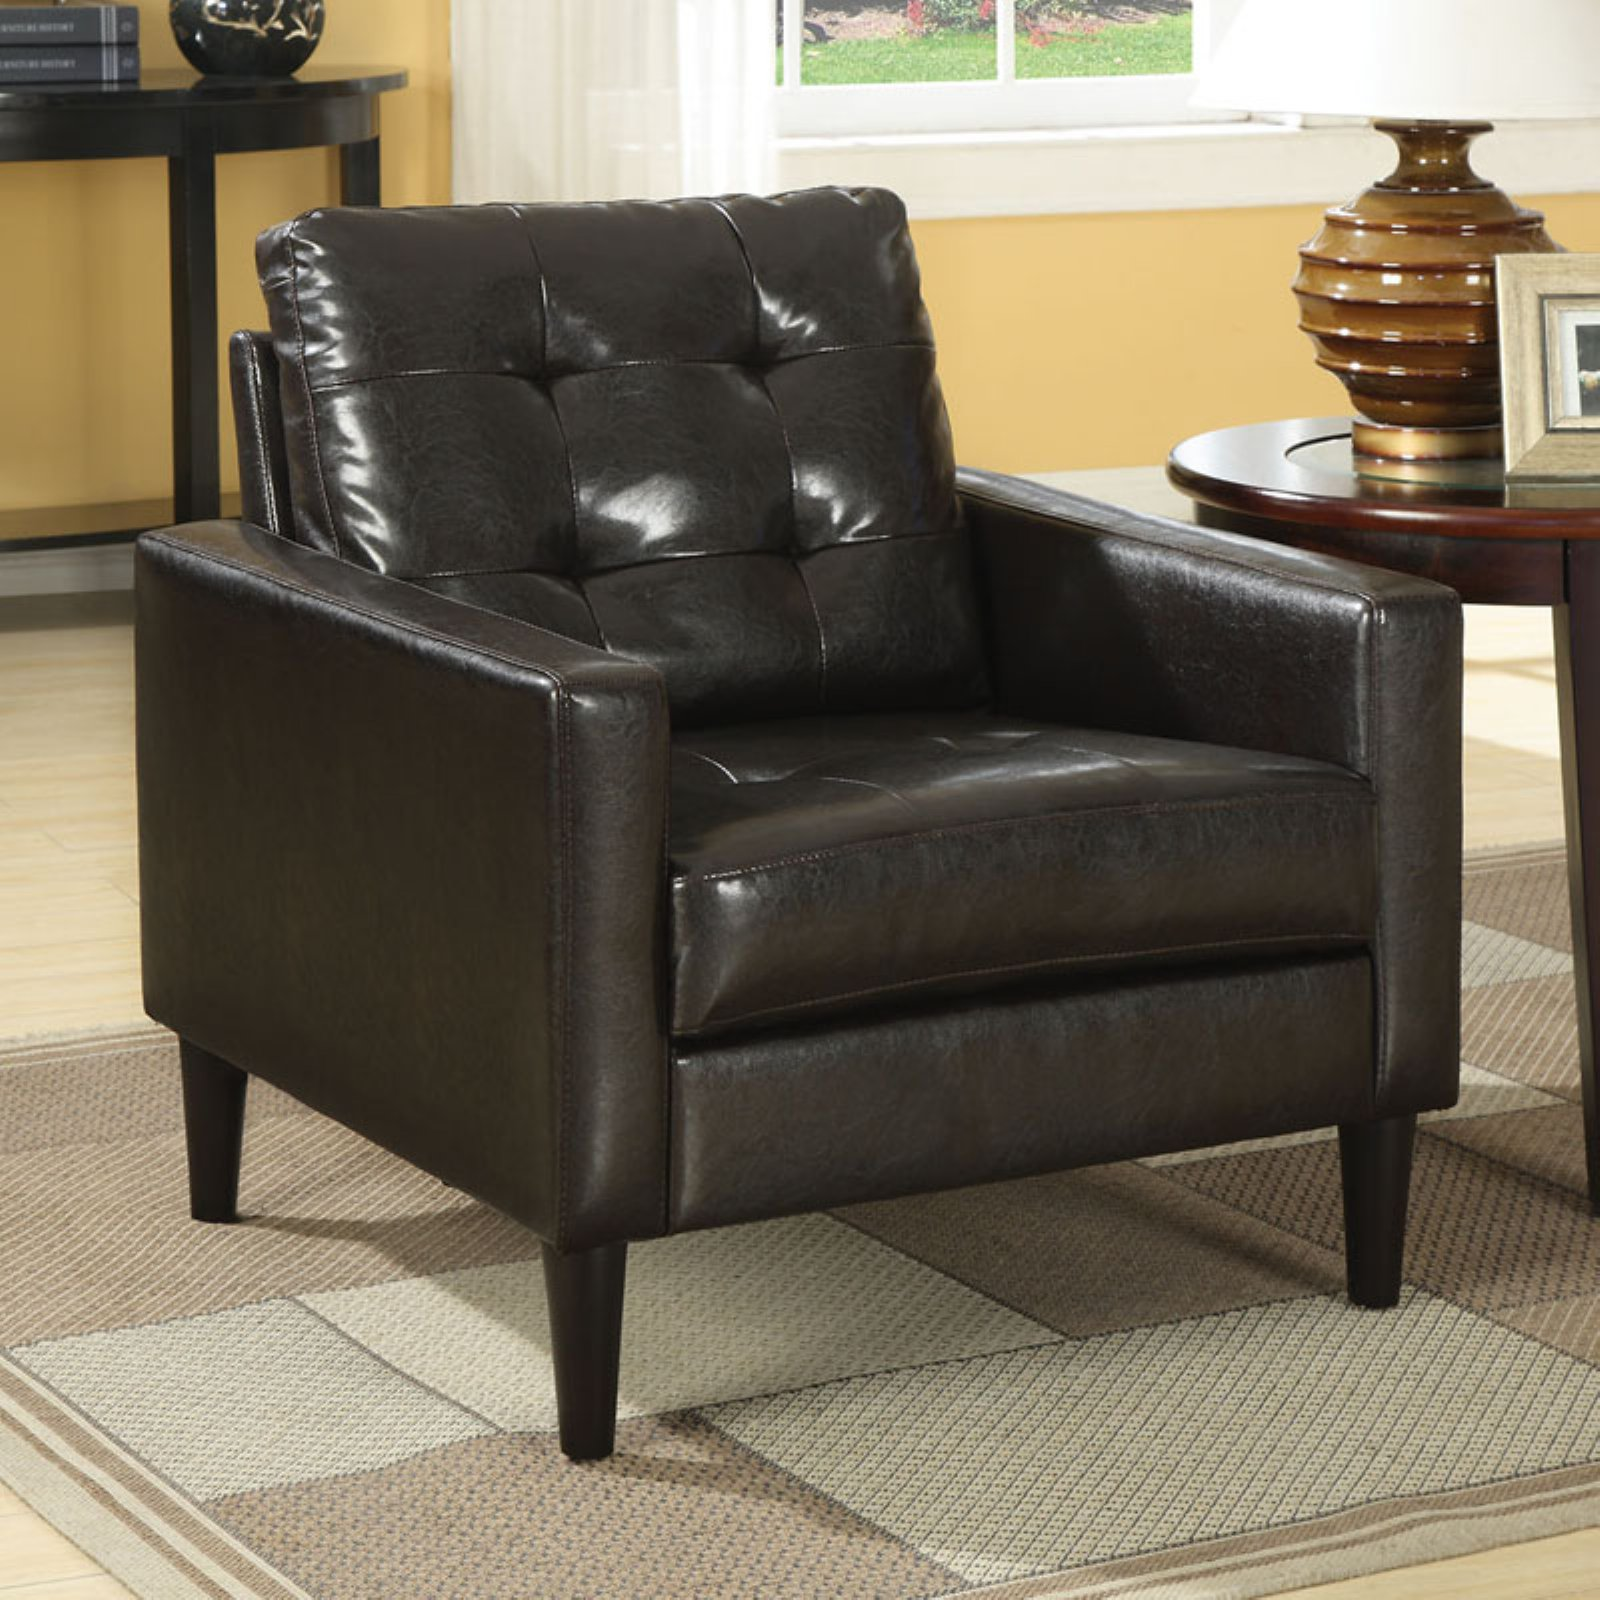 Acme Balin Accent Chair, Faux Leather, Multiple Colors